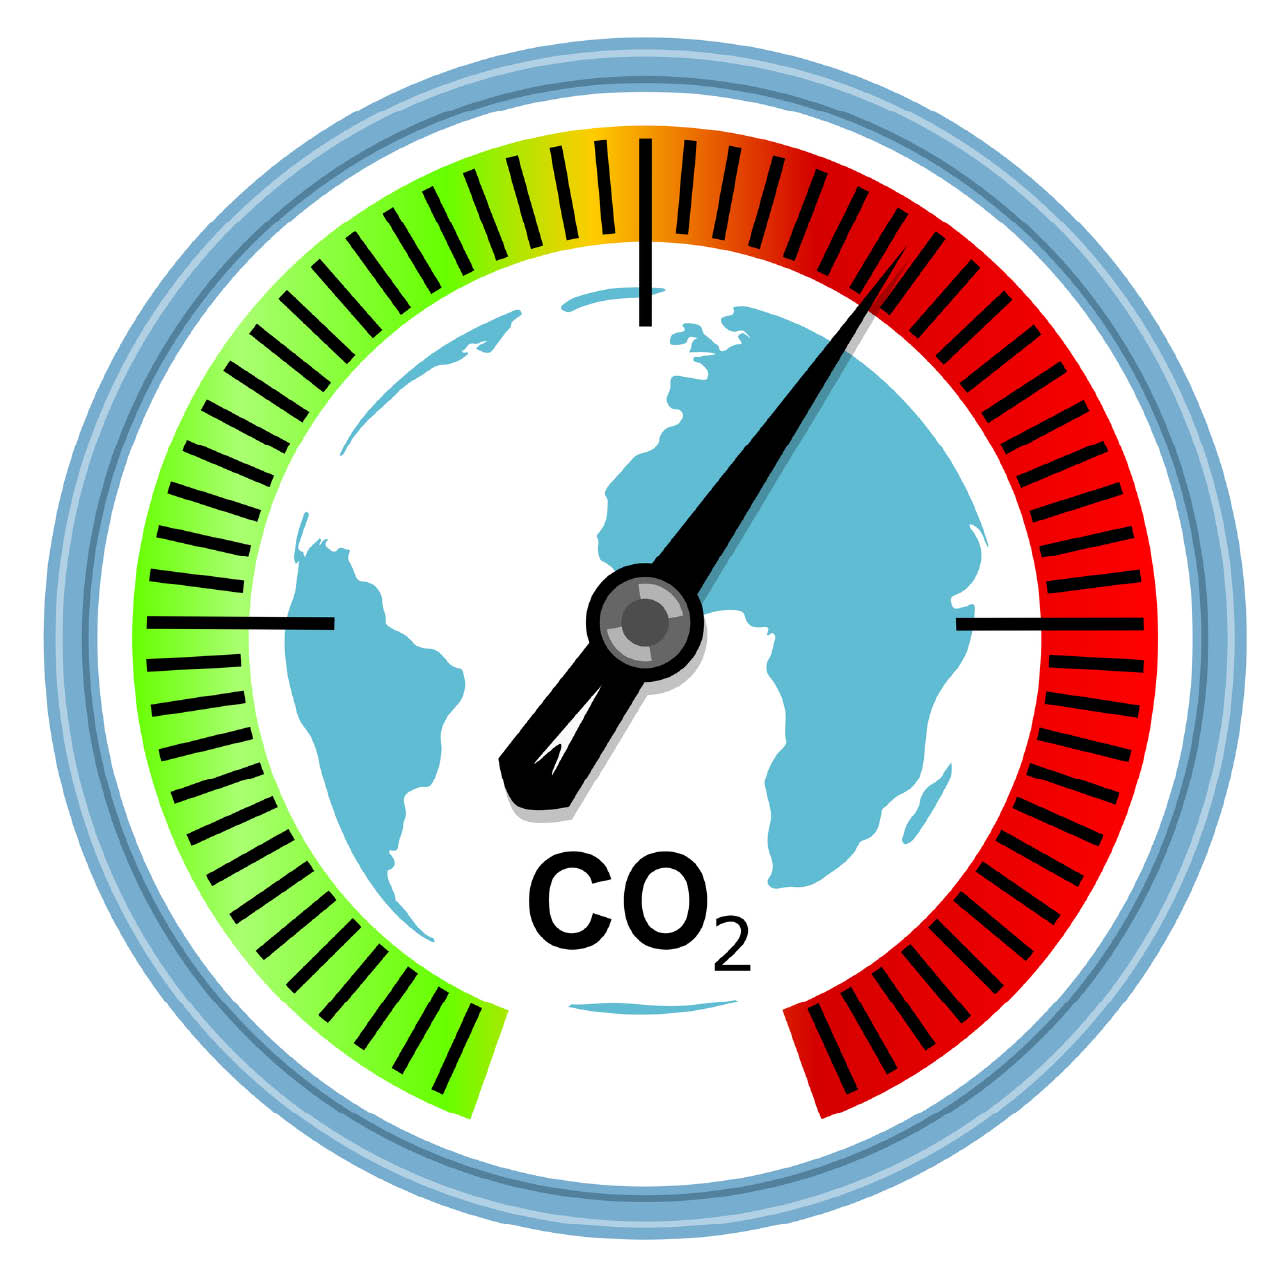 How bad could the effect of CO2 on the Earth become?